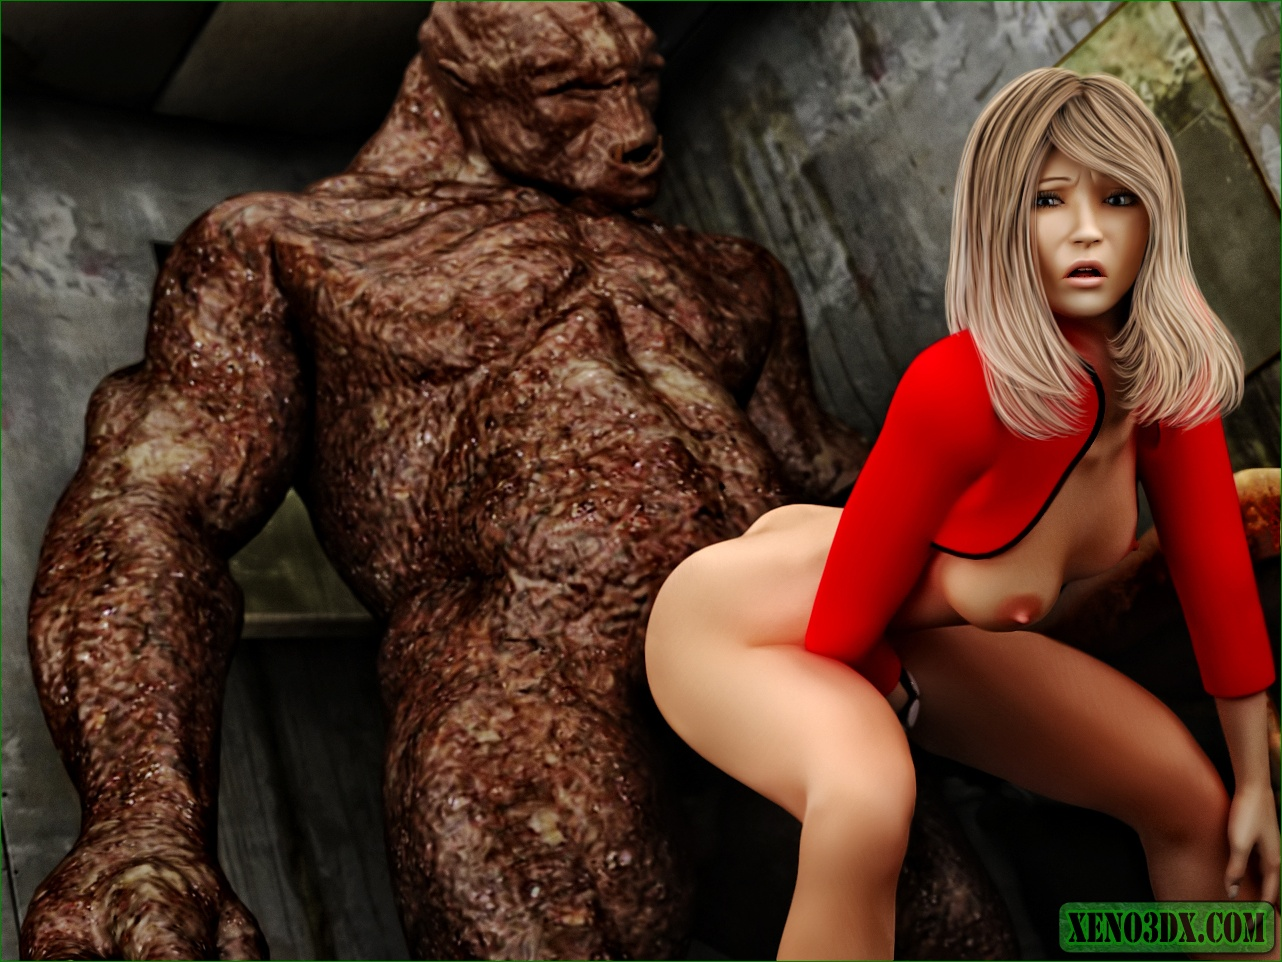 Monster fuking girl naked clip